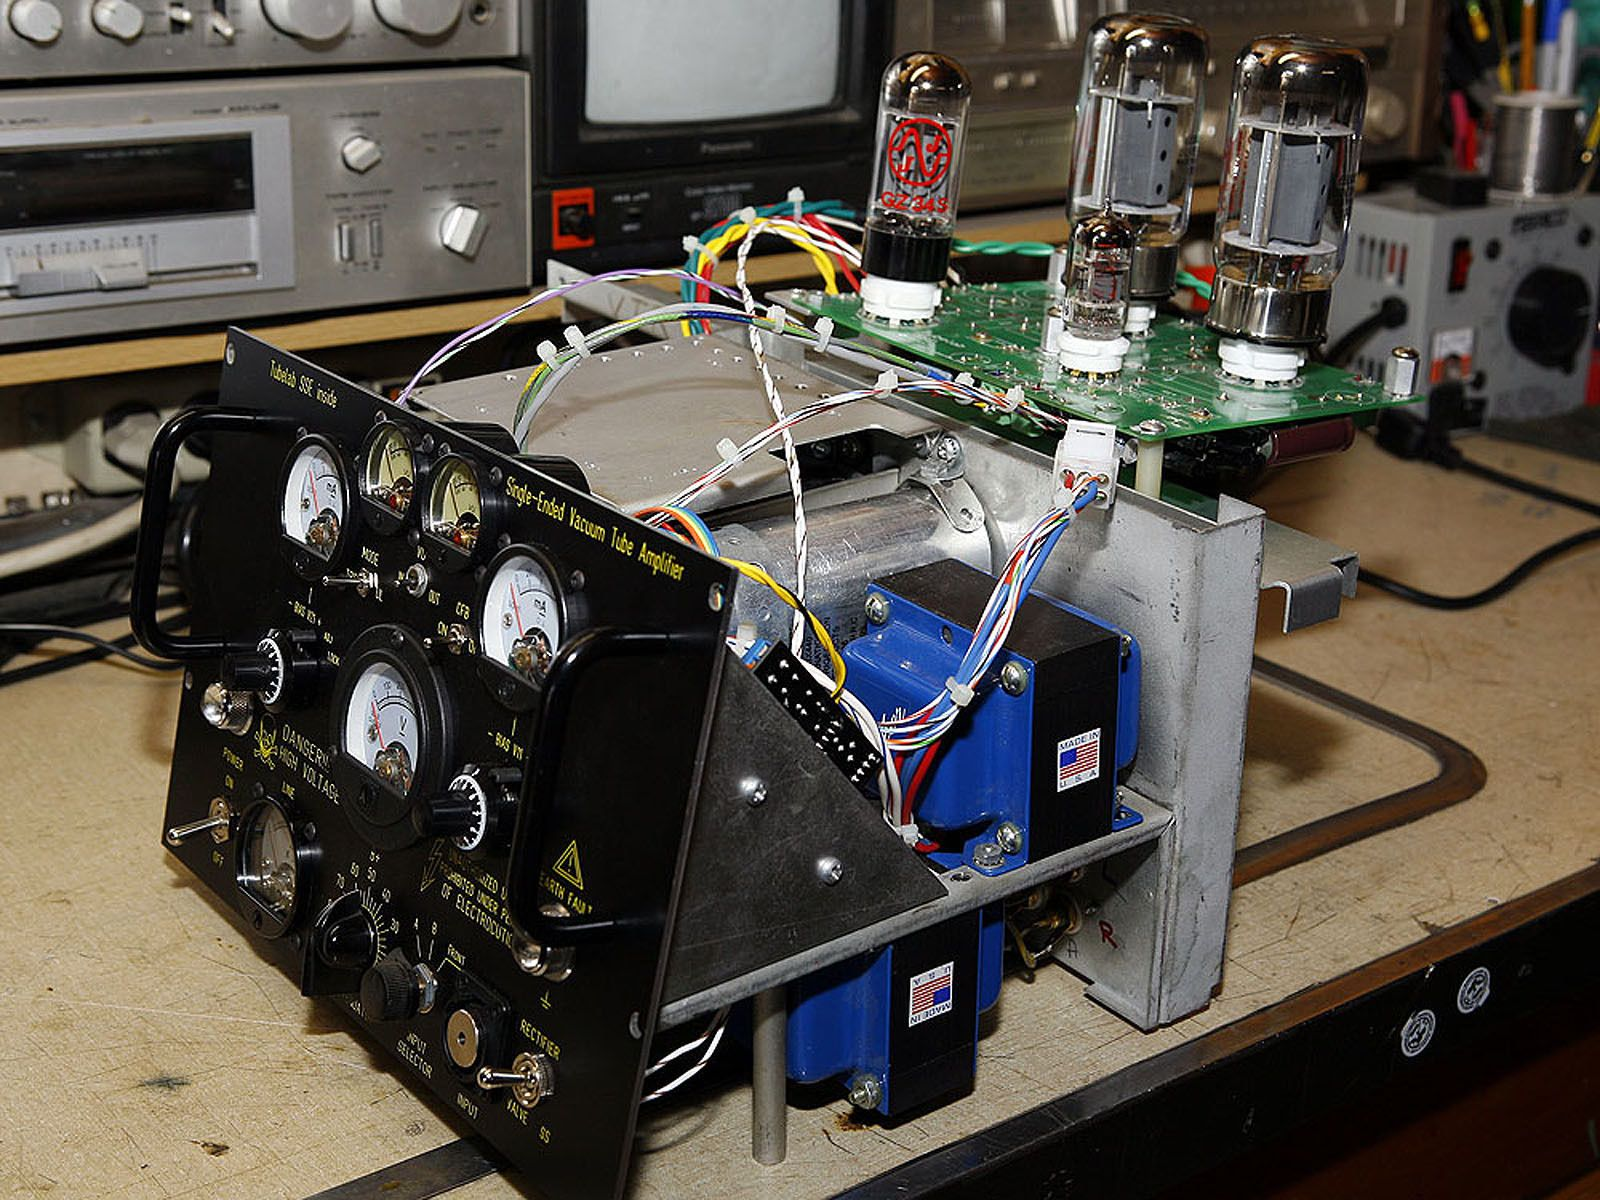 One of a kind Single-Ended Triode Tube Amplifier for your Man Cave